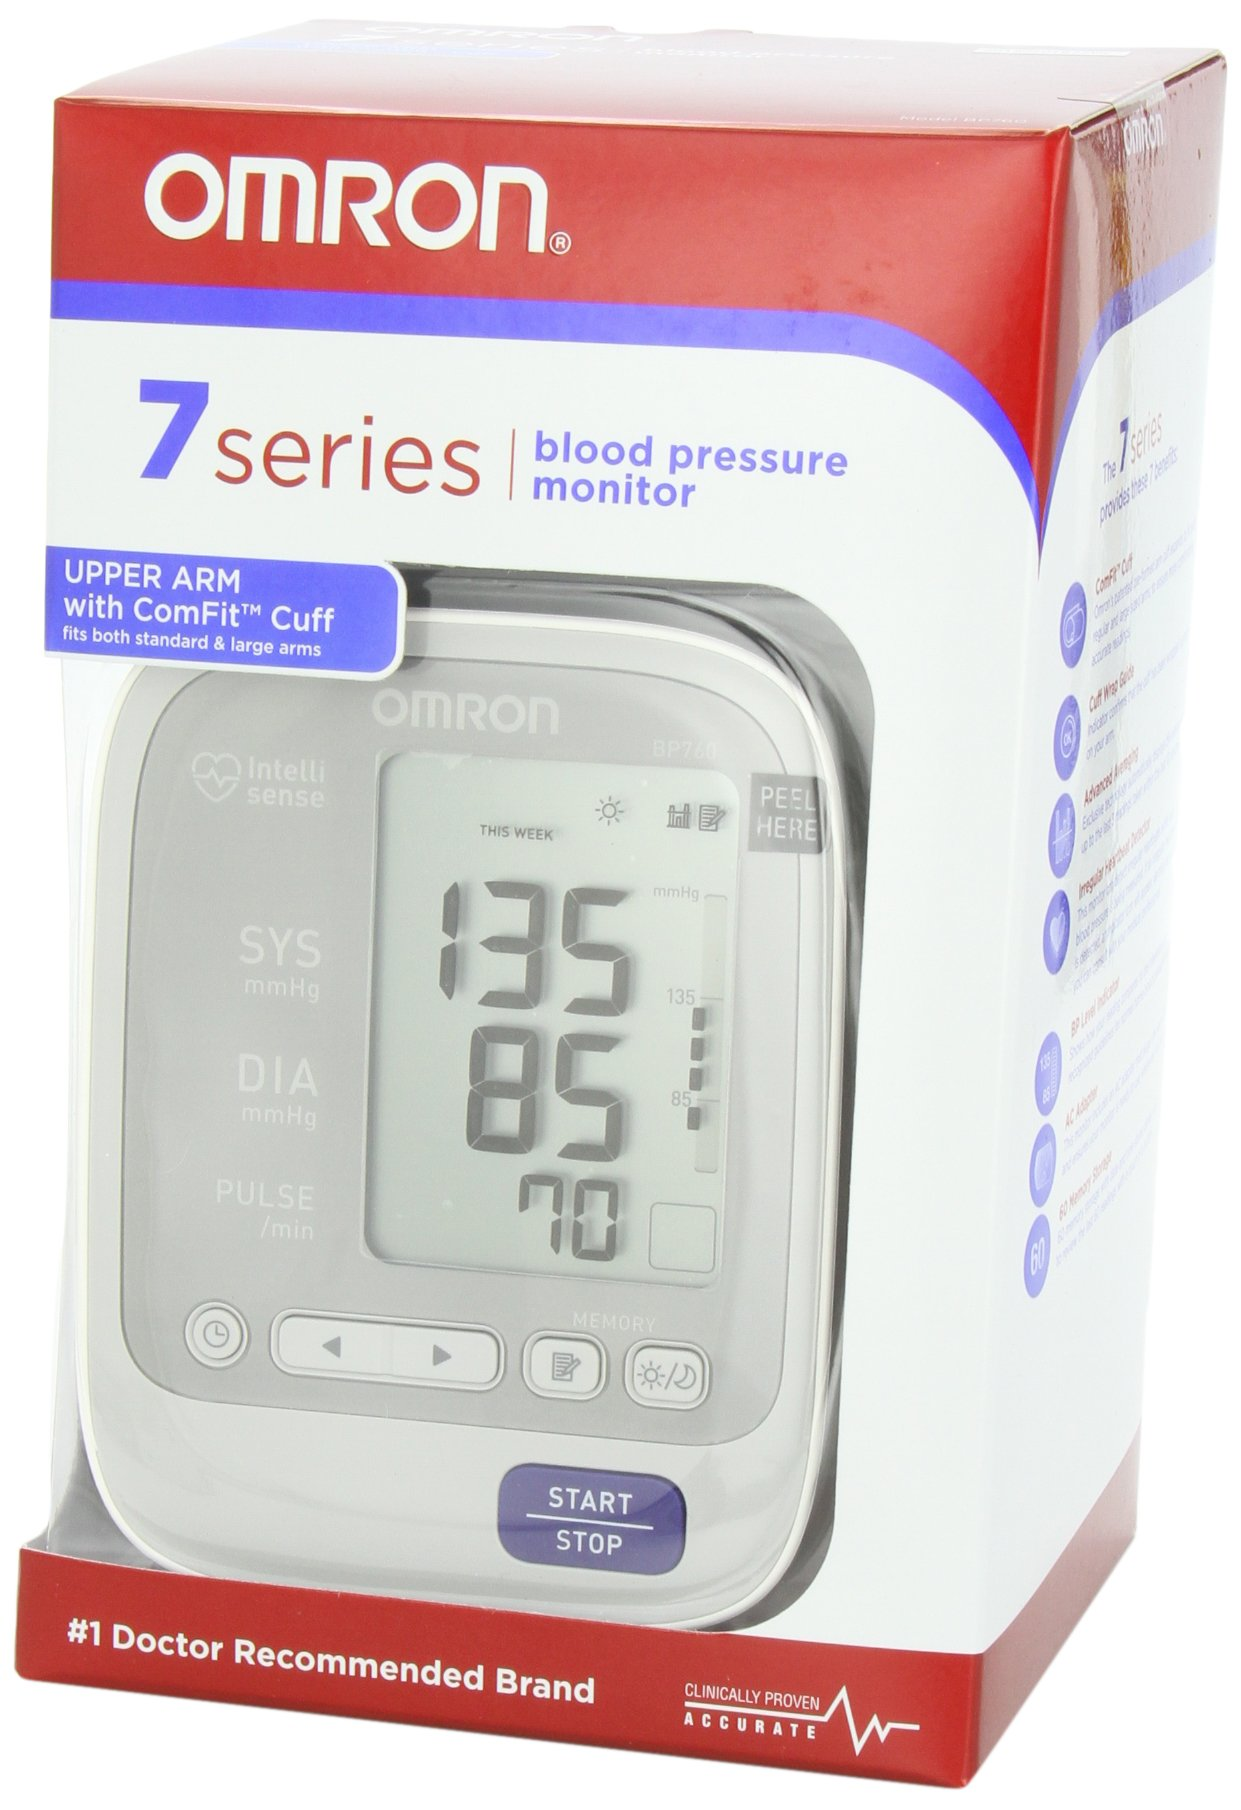 Omron 7 Series Upper Arm Blood Pressure Monitor by Omron (Image #5)